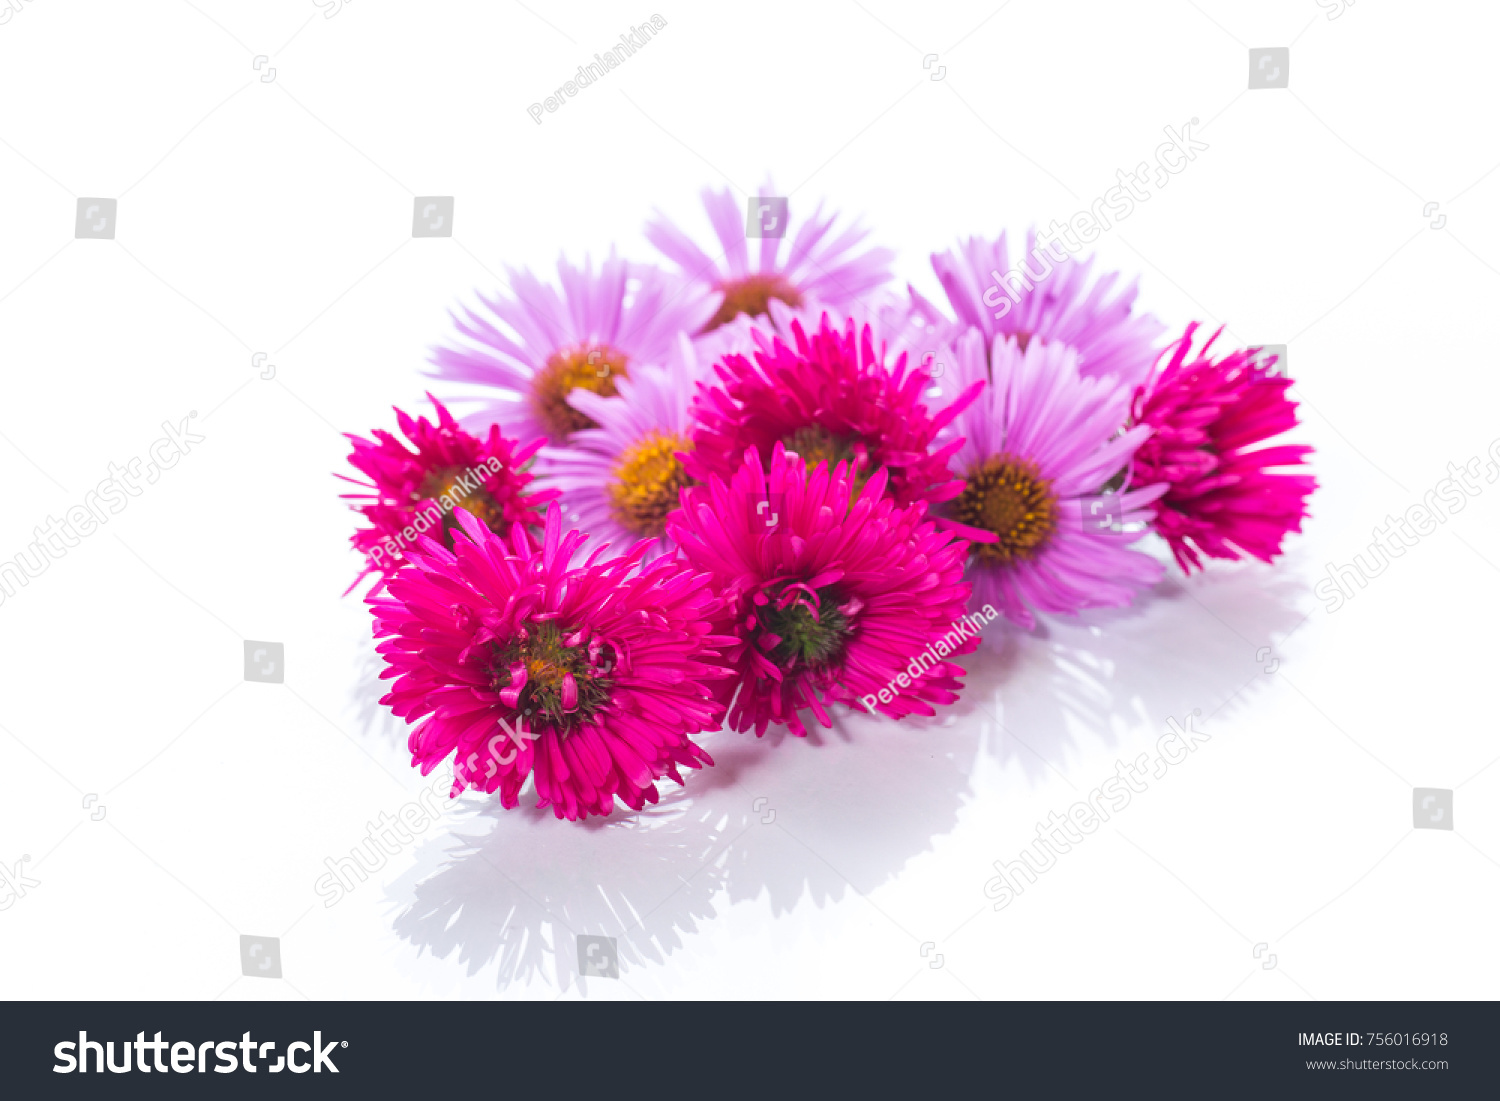 Small Beautiful Chrysanthemum Flowers On A White Background Ez Canvas